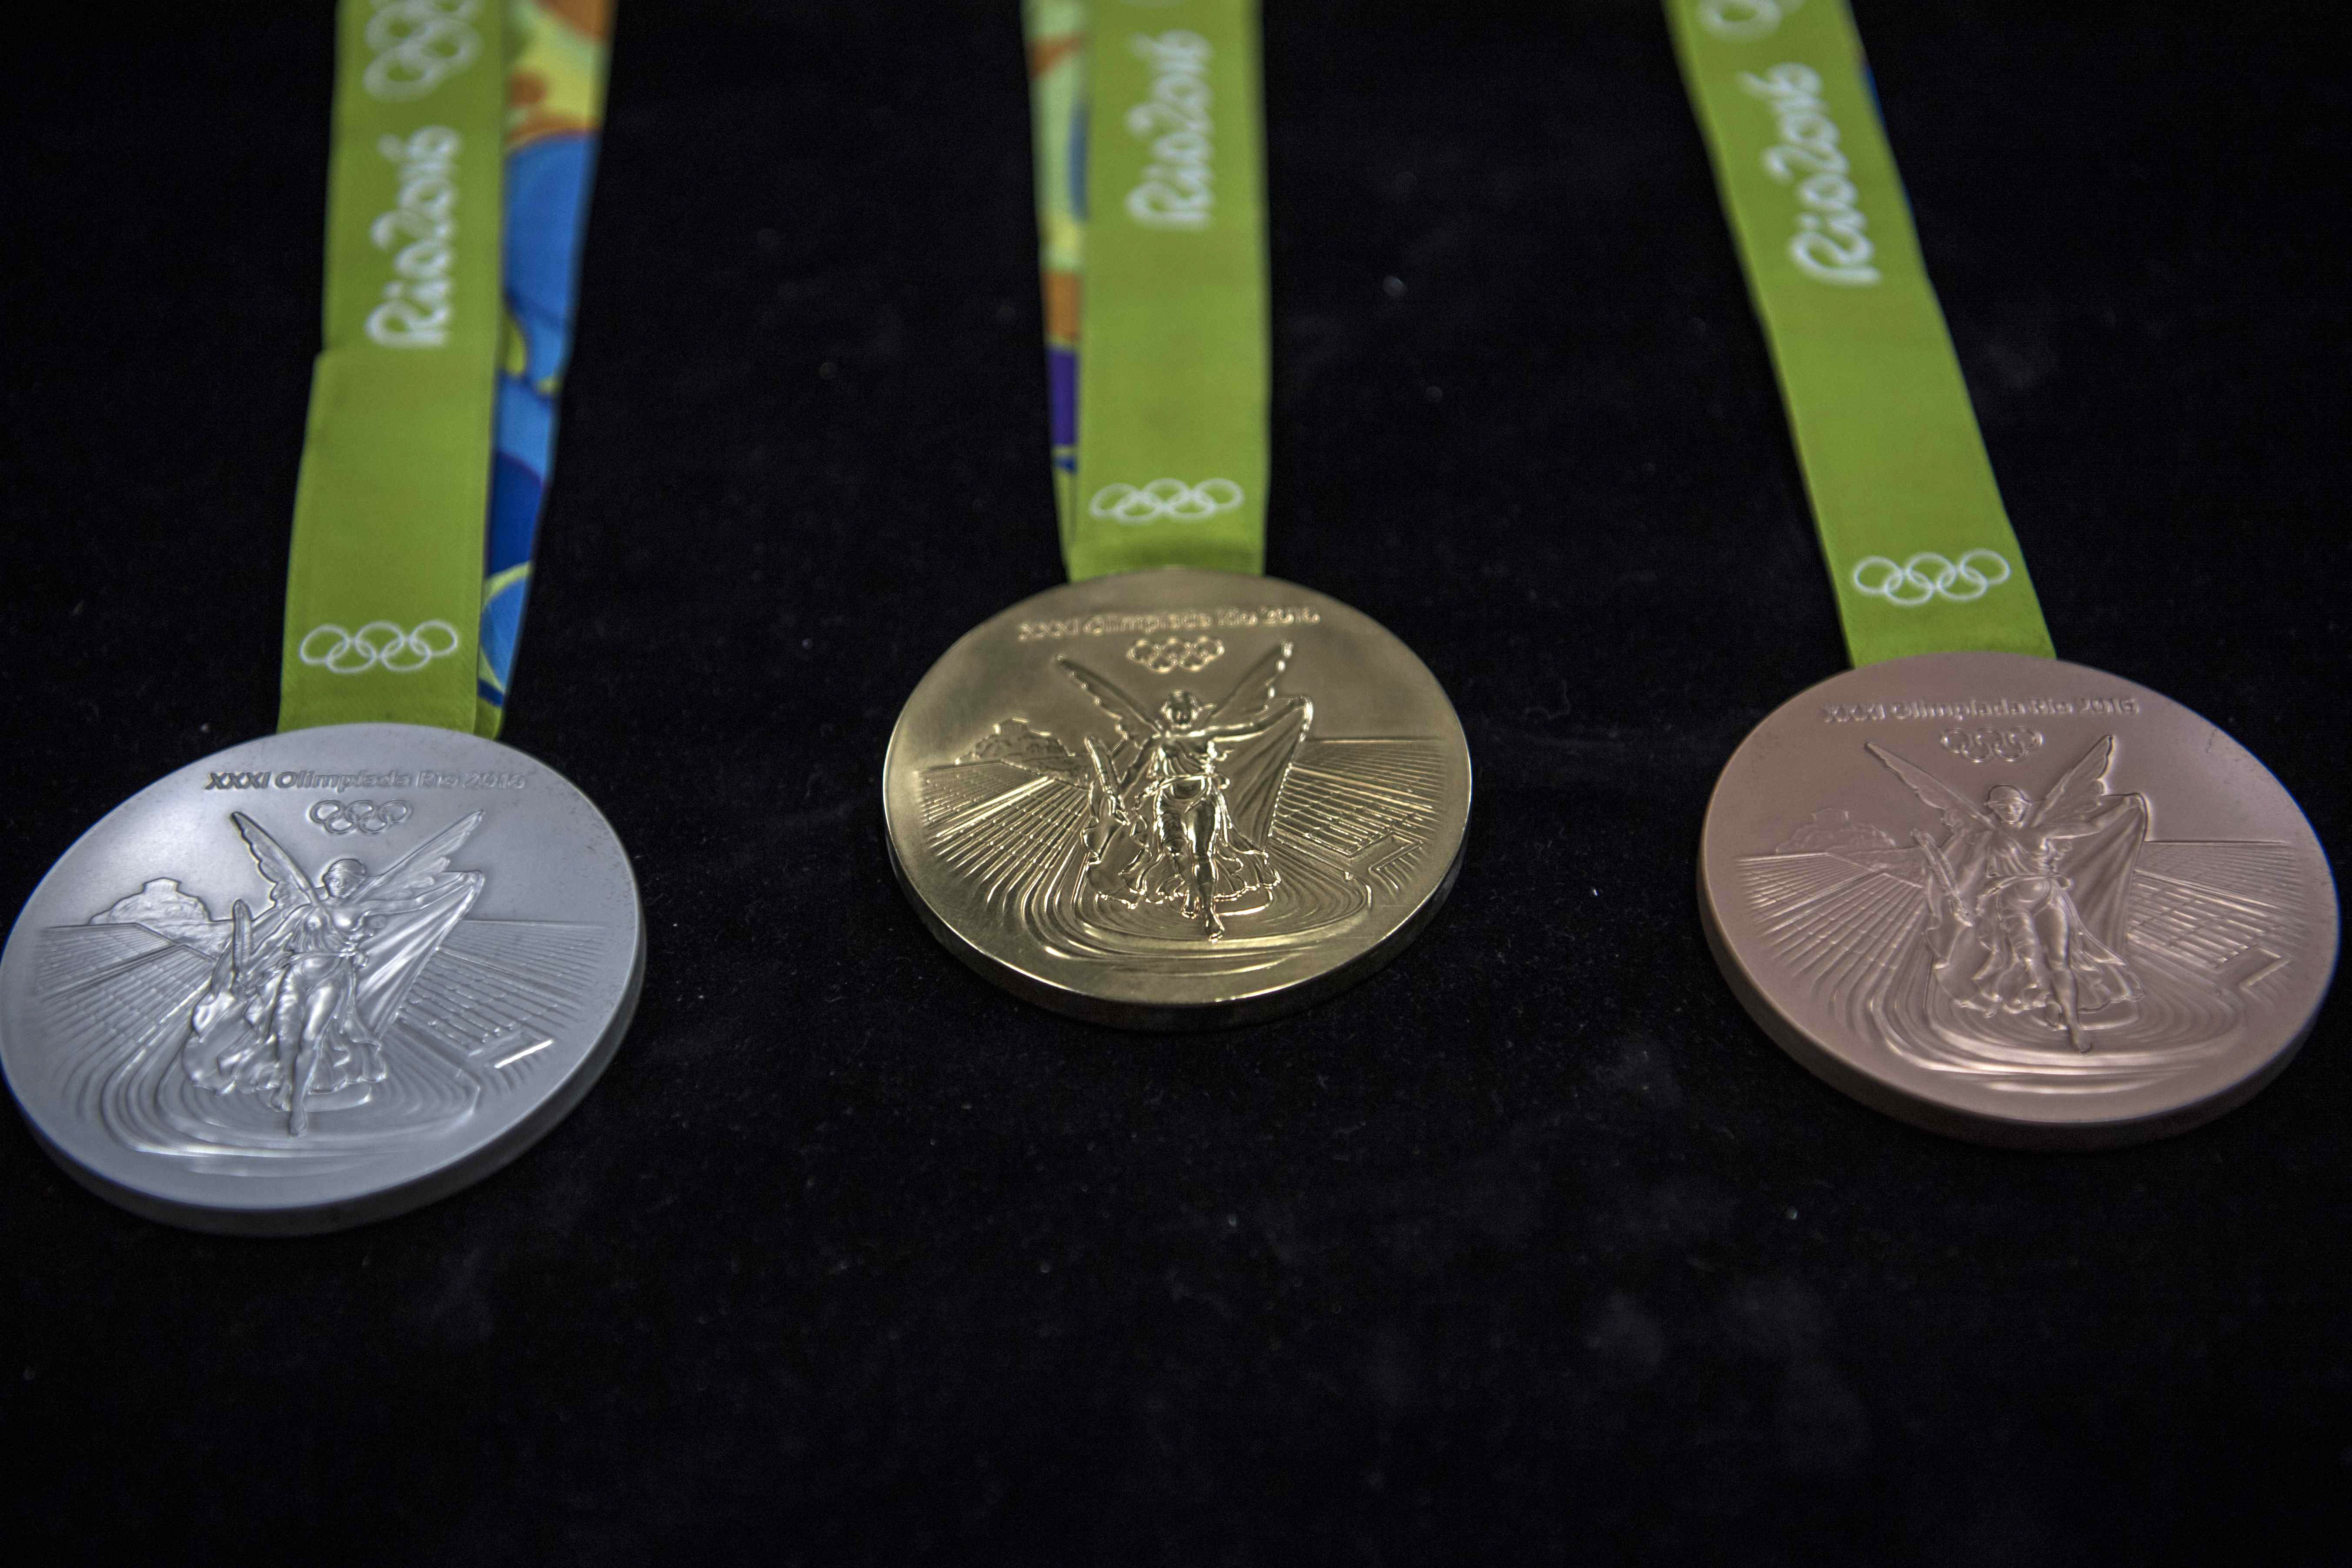 How Much Is A Silver Medal Worth? The Rio Olympics Will Have